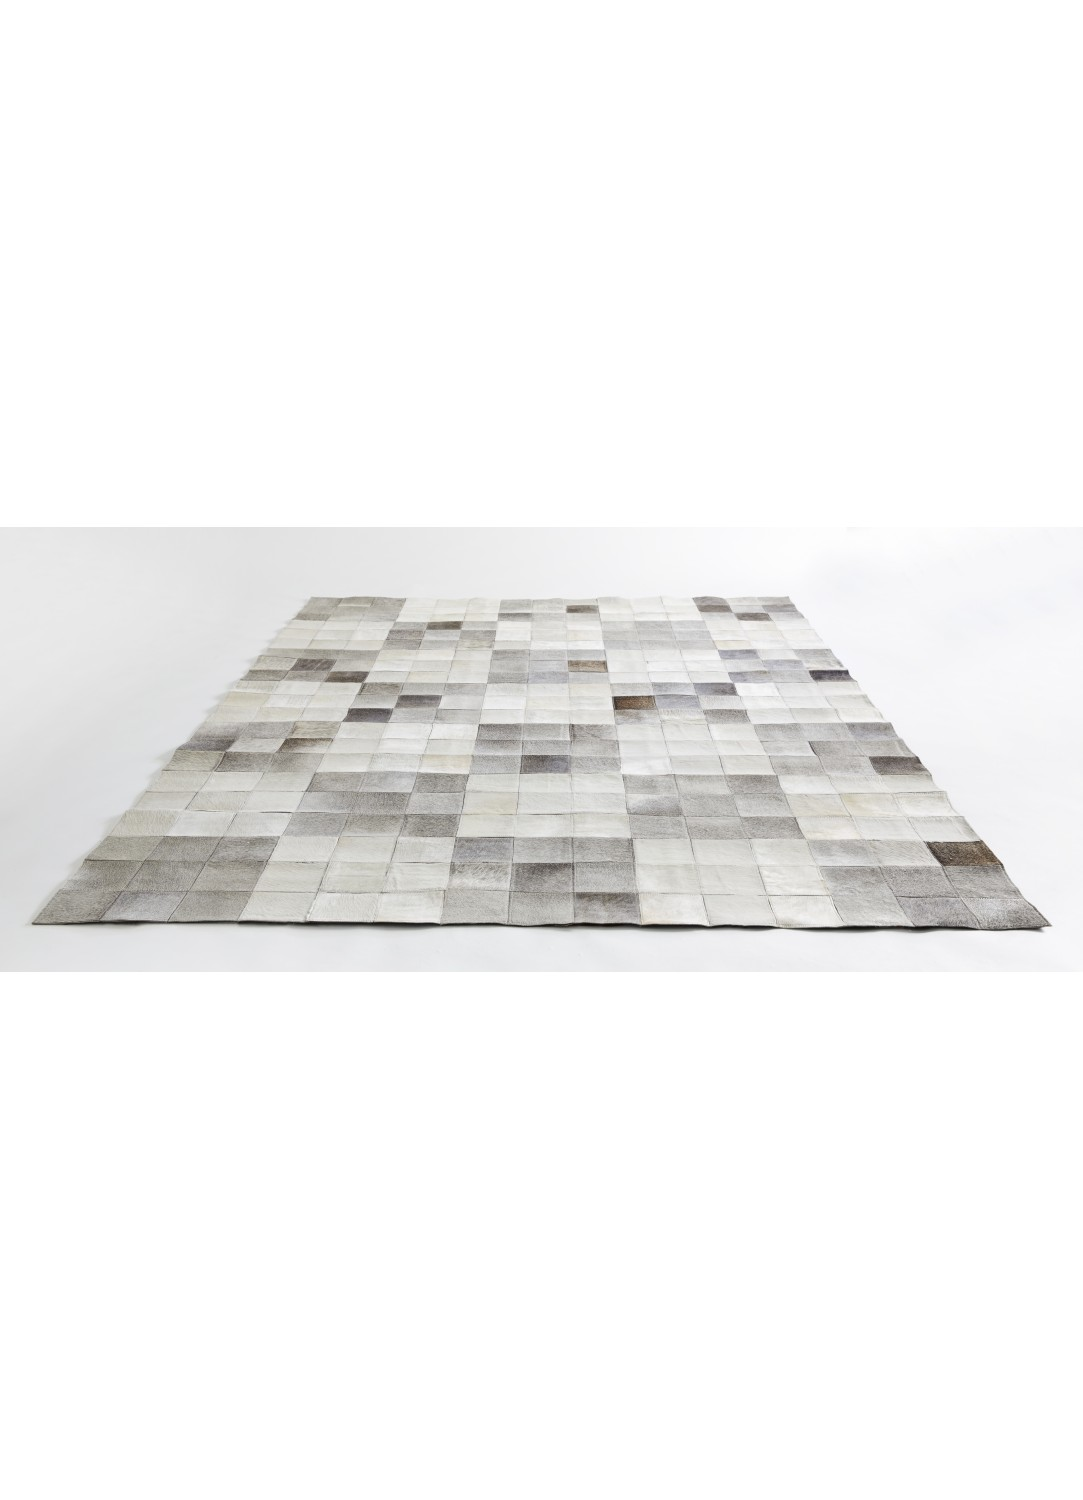 tapis patchwork effet damier gris homemaison vente en ligne tapis d co. Black Bedroom Furniture Sets. Home Design Ideas